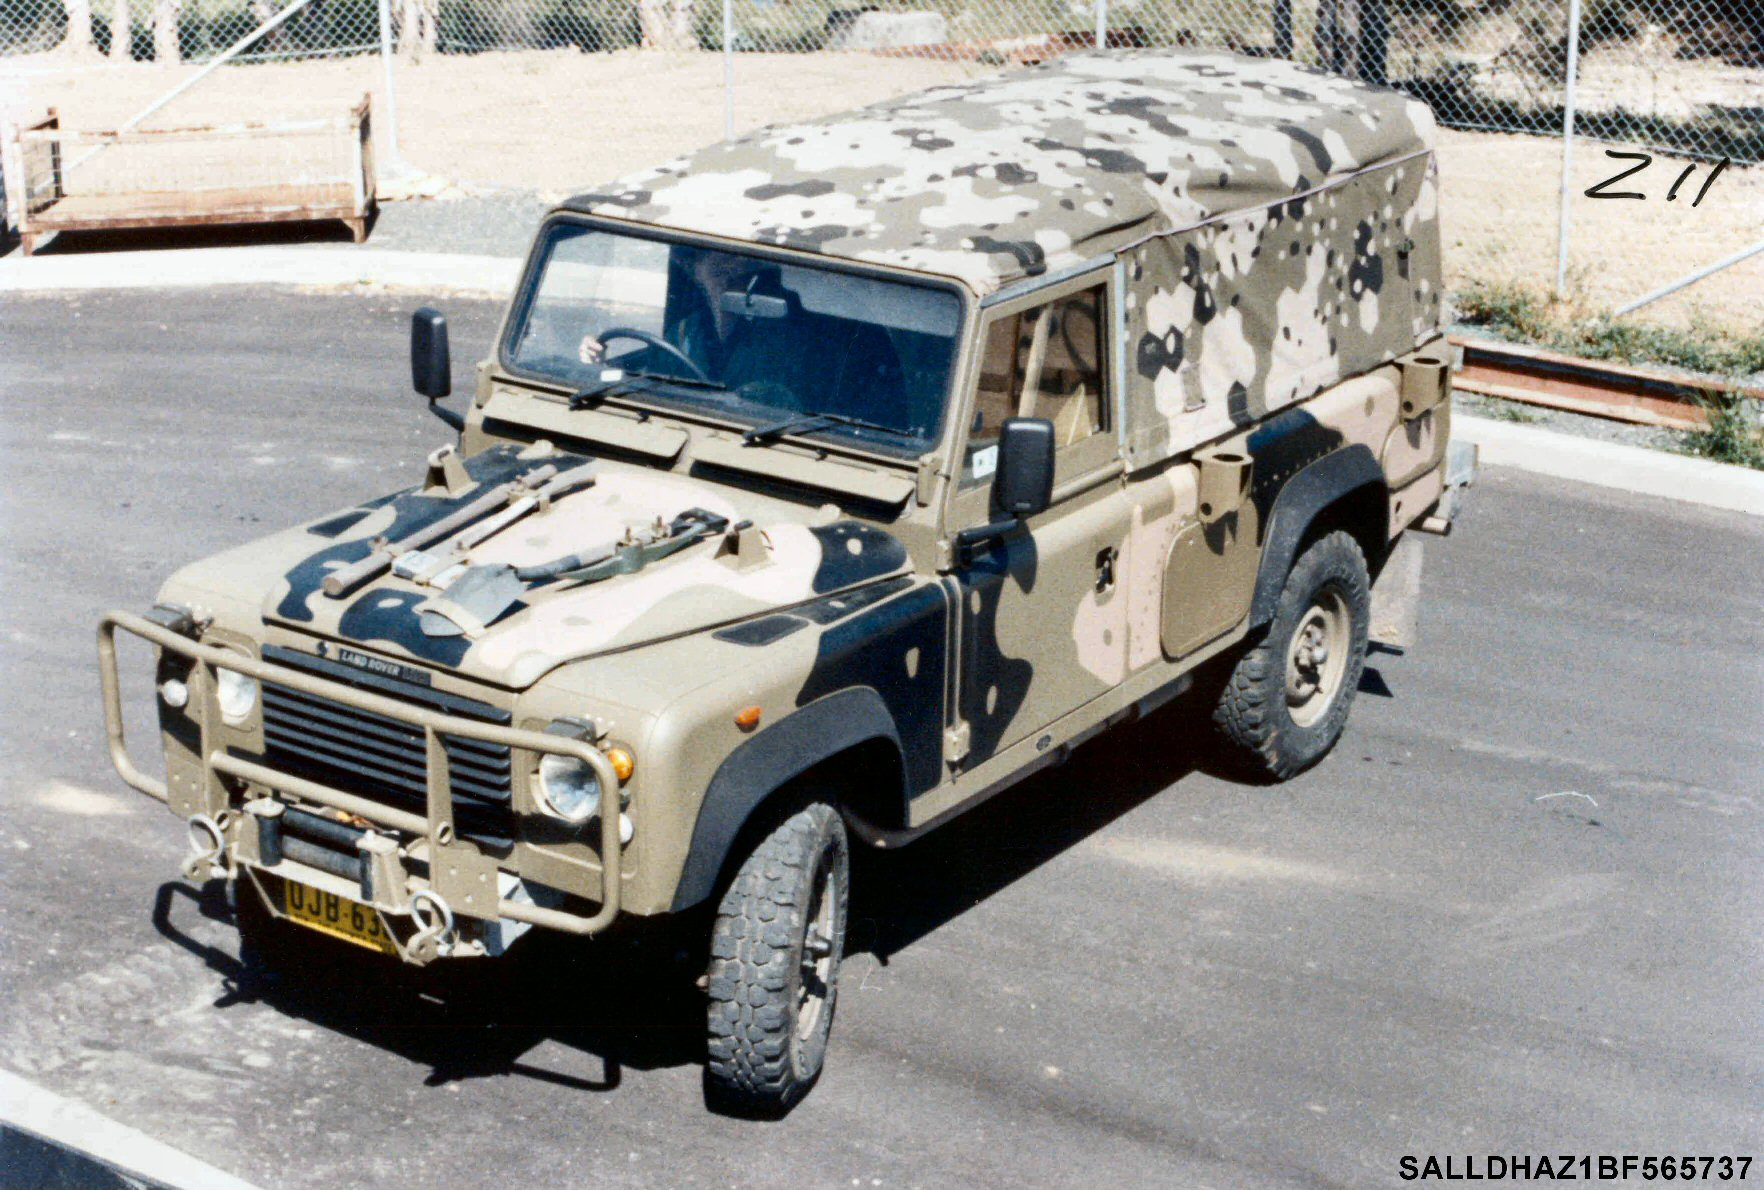 Perentie 110 Fitted For Radio Ffr Remlr Http Wwwlandroverlightweightcodiagramjpg The Engineering Development Vehicle Retained By Land Rover Australia At Moorebank